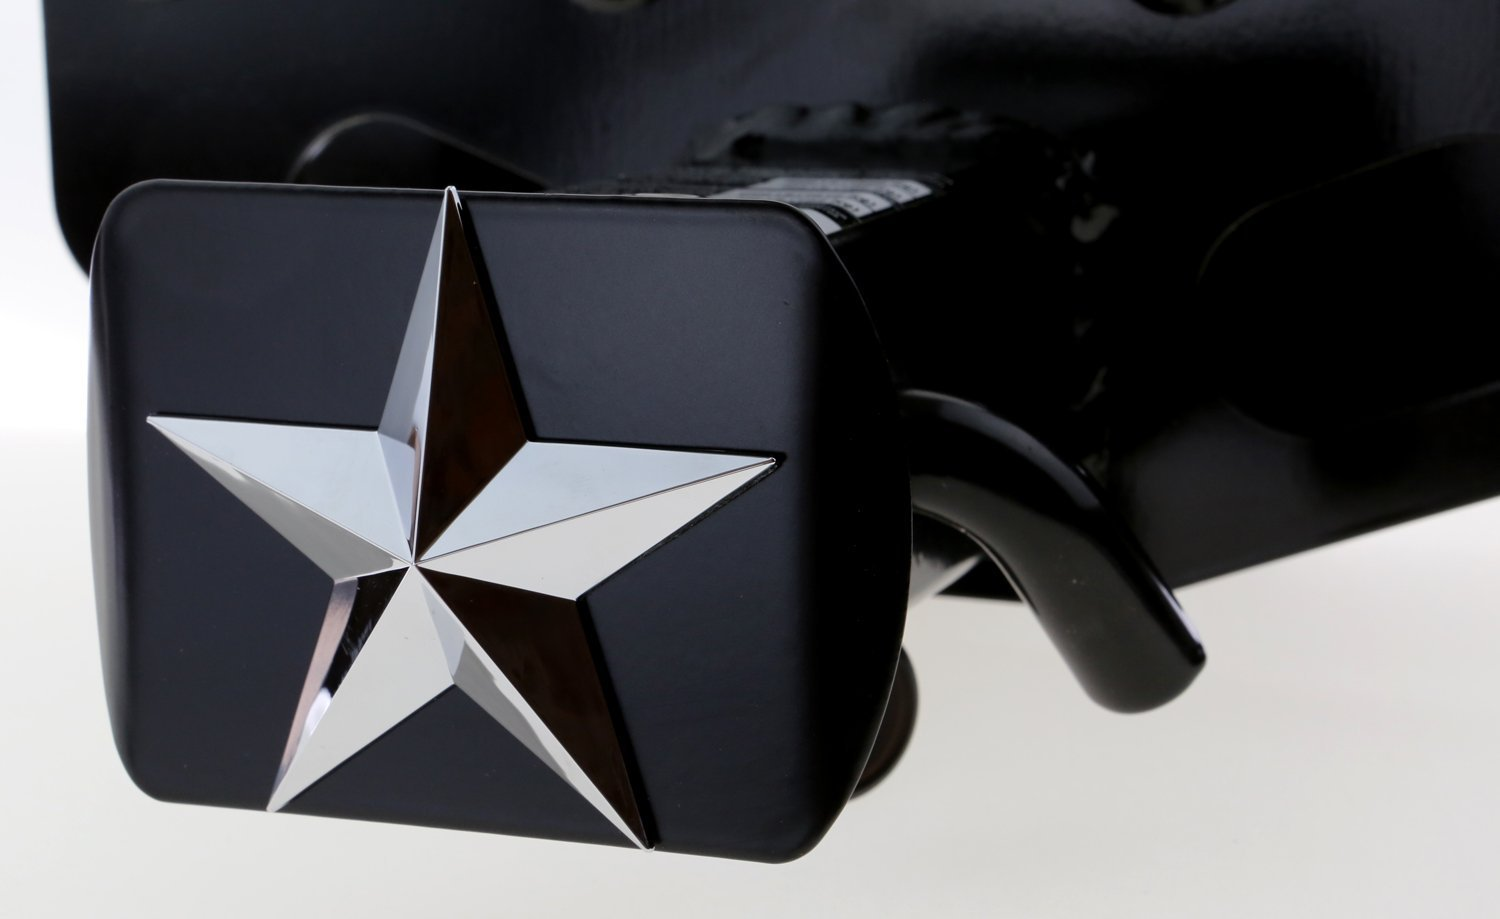 Texas Lone Star 3D Chrome Emblem Trailer Metal Hitch Cover Fits 2 Receivers New bparts